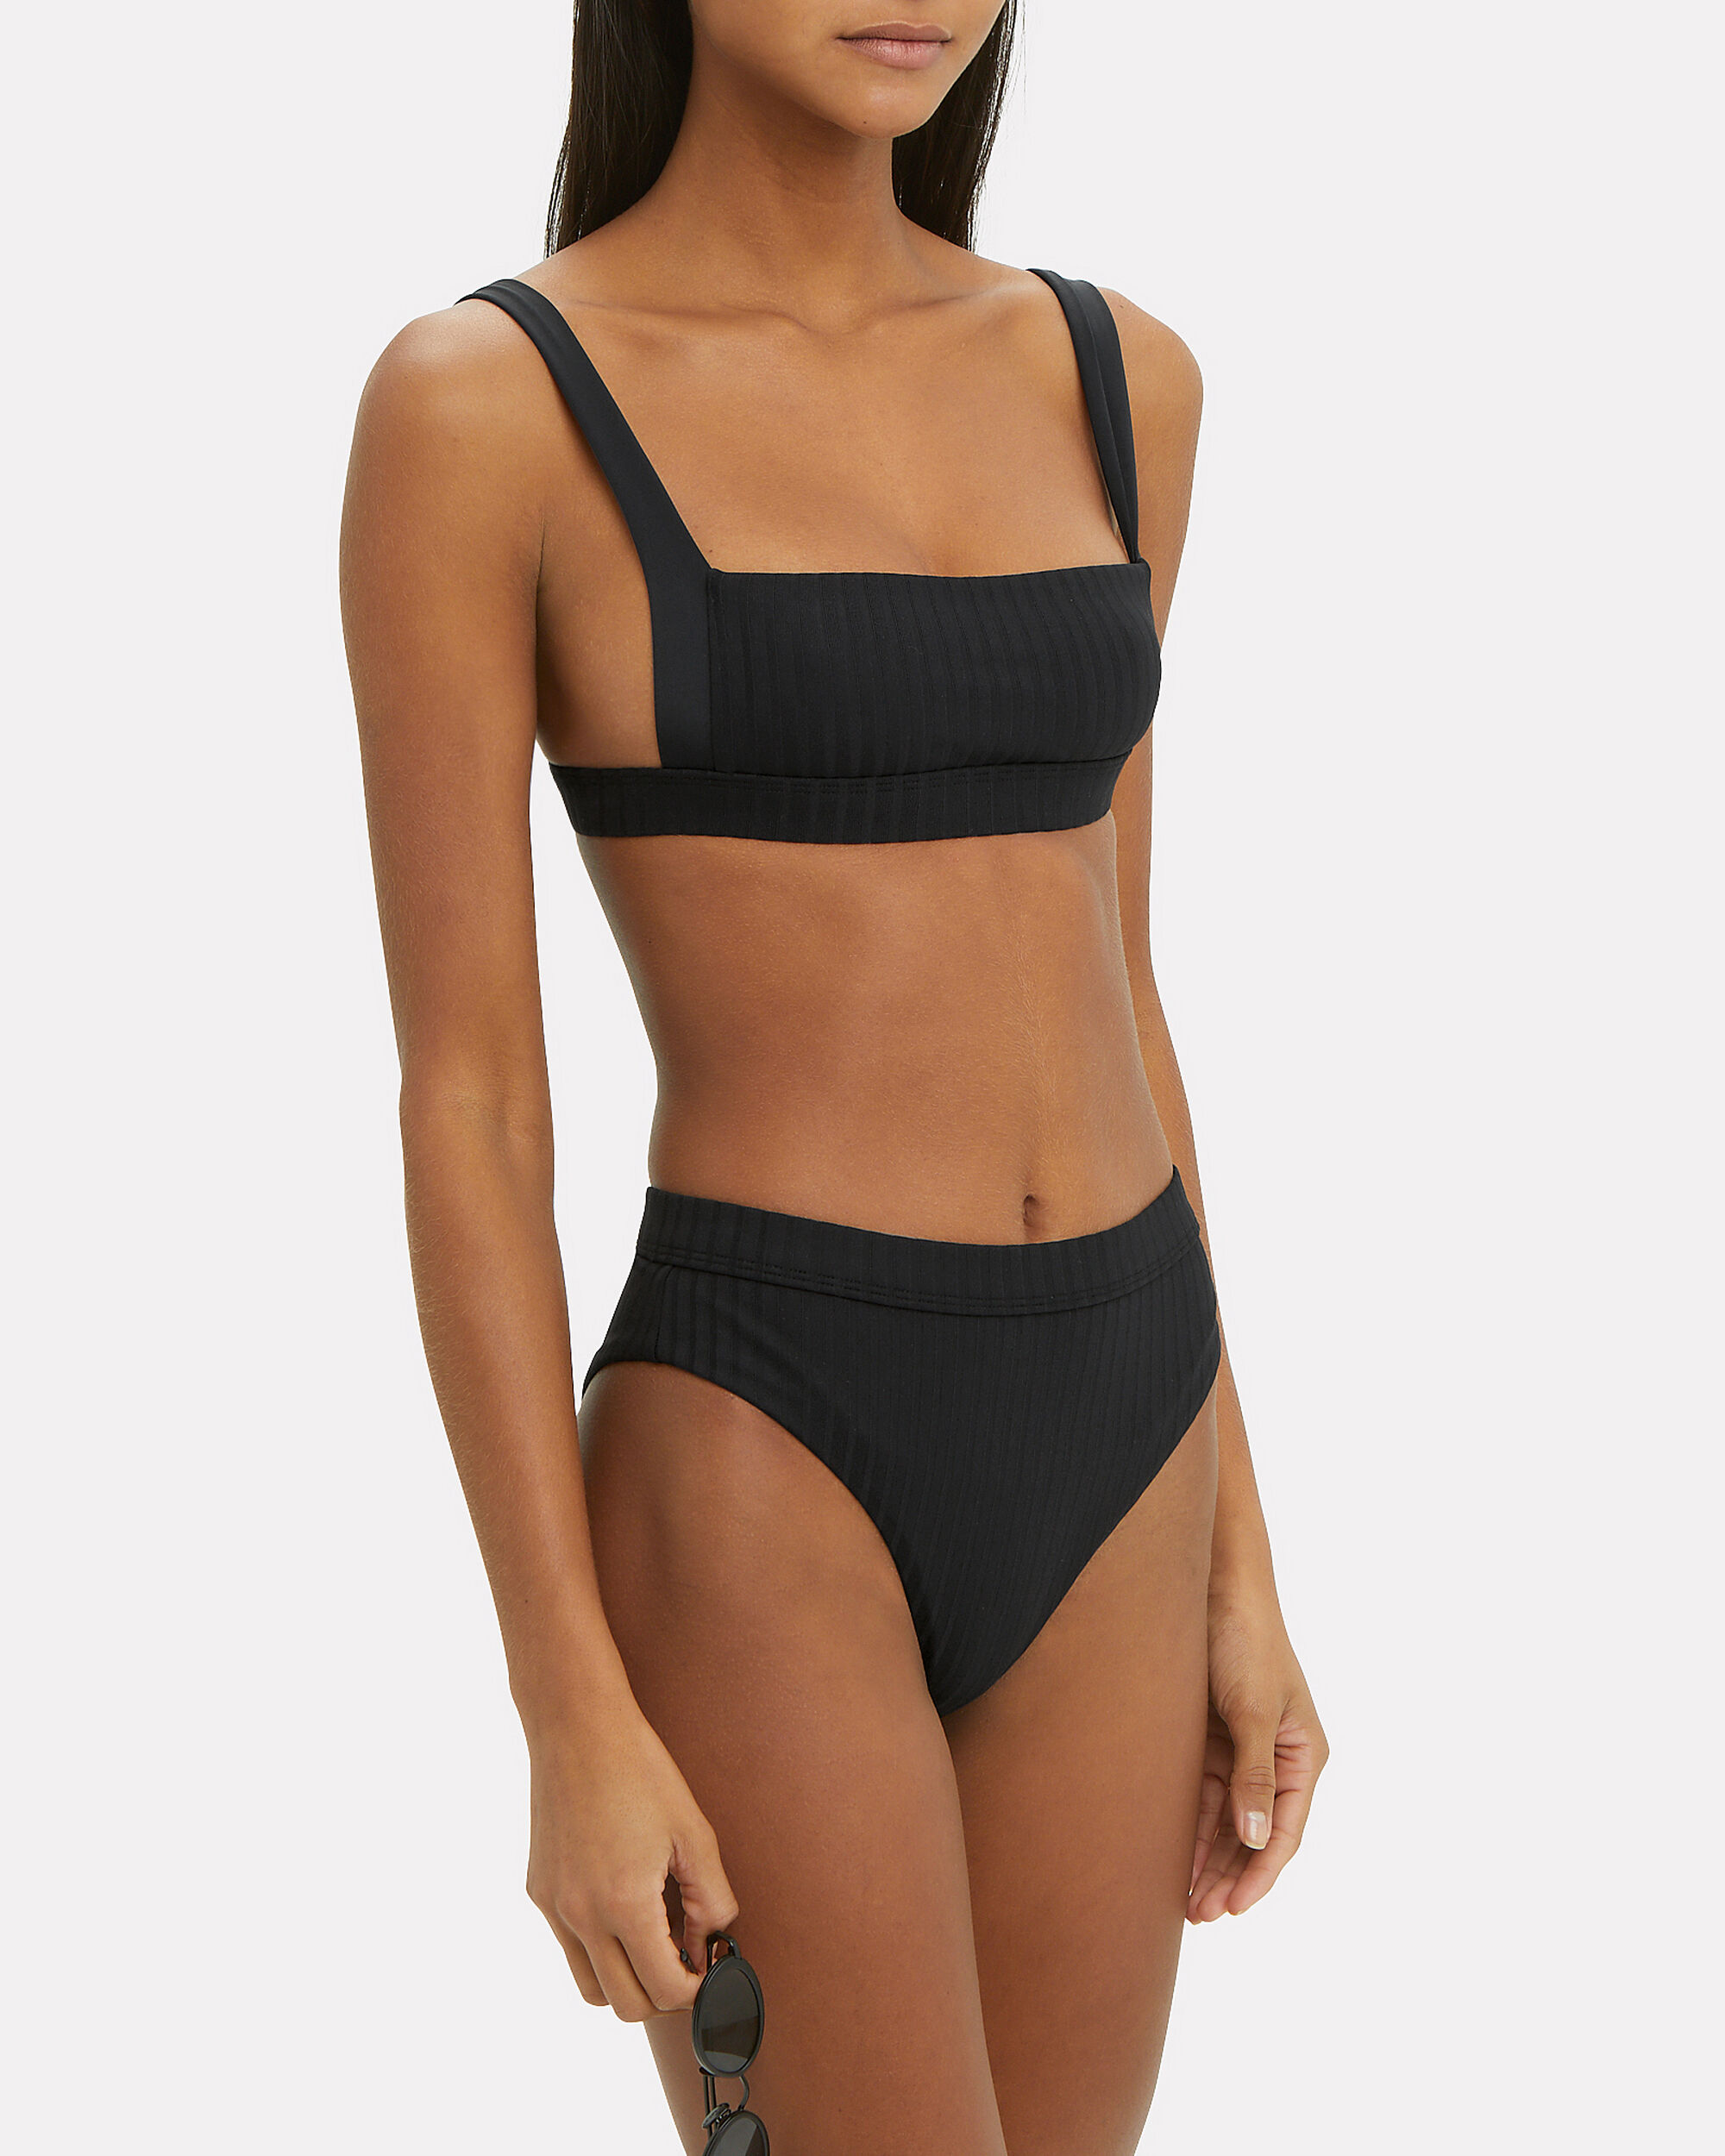 90 Degrees Crop Bikini Top, BLACK, hi-res